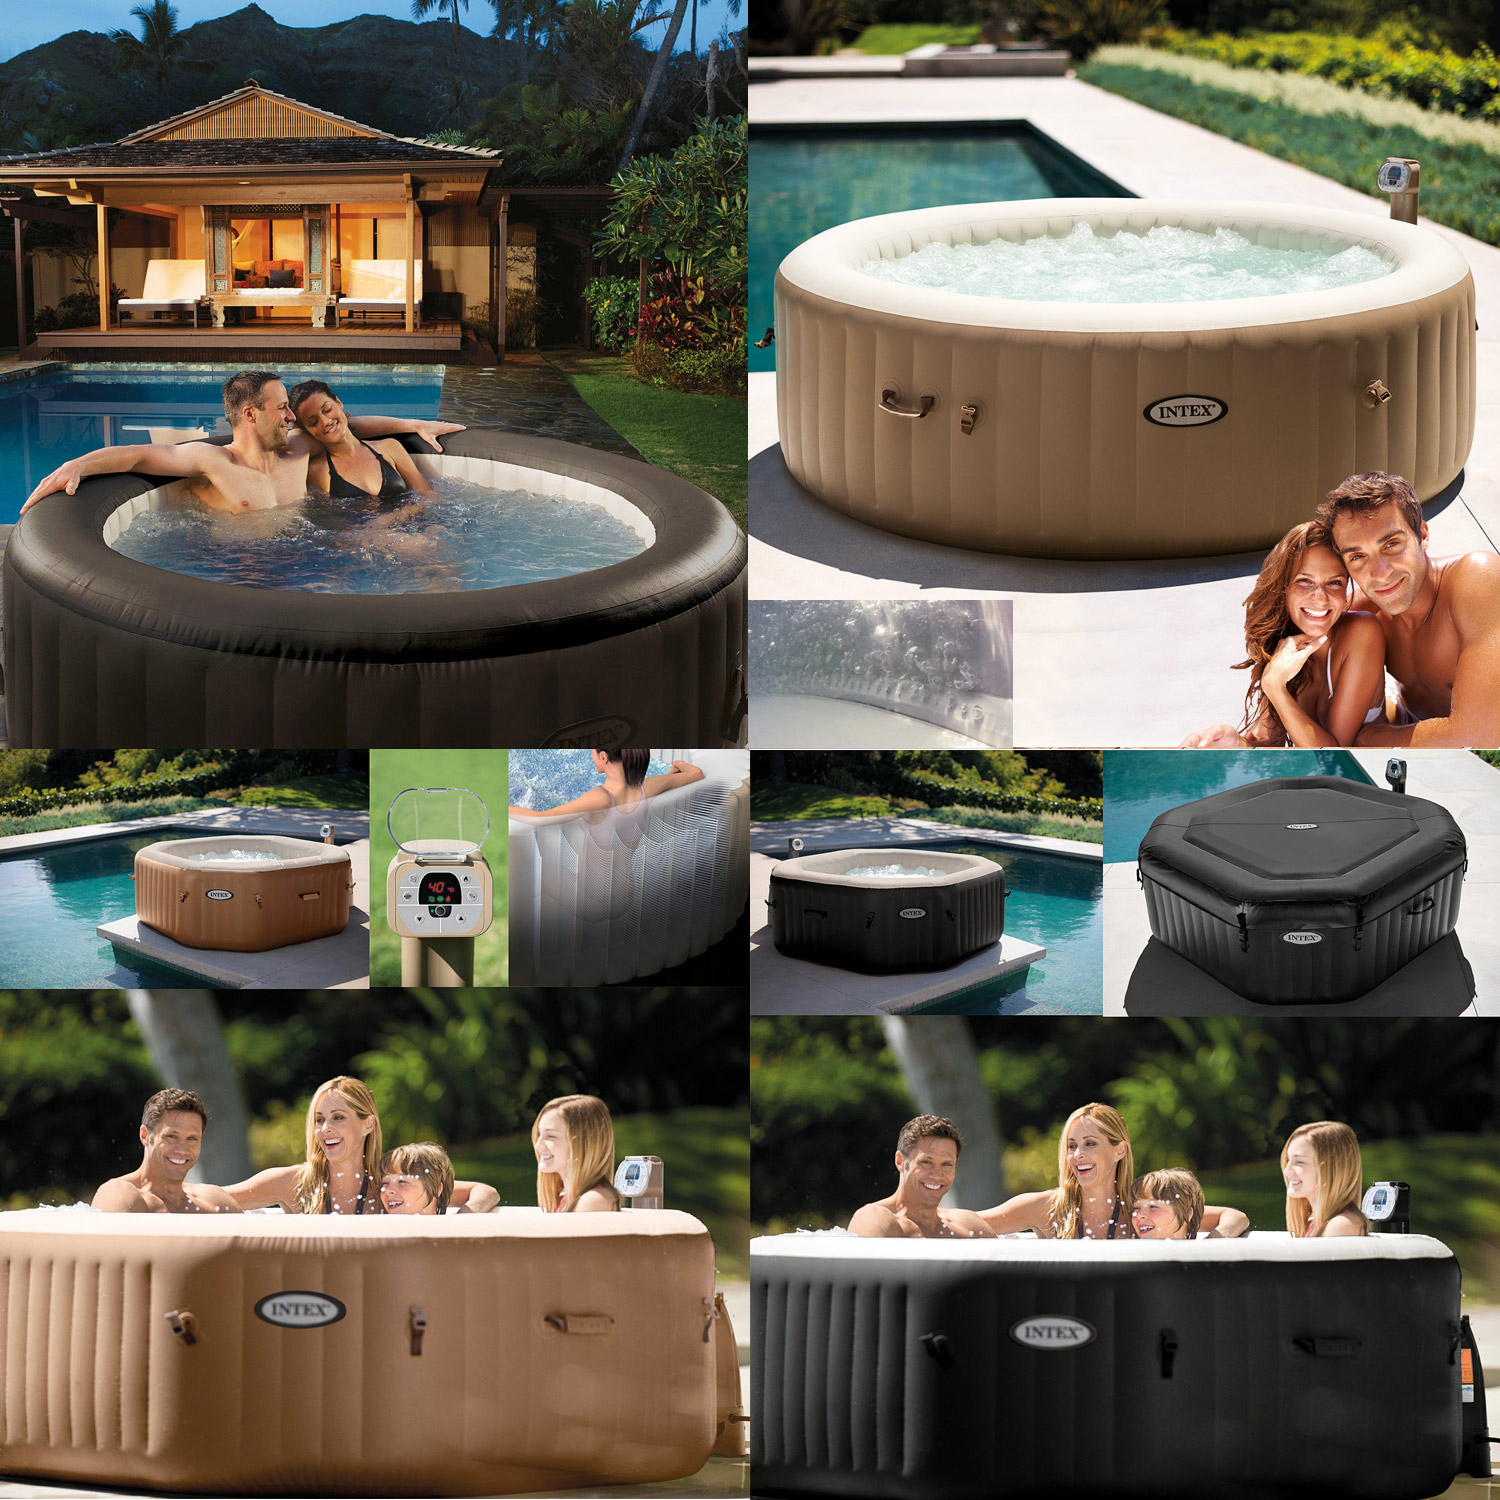 intex deluxe whirlpool spa pool badewanne aufblasbar whirlwanne outdoor heizung ebay. Black Bedroom Furniture Sets. Home Design Ideas